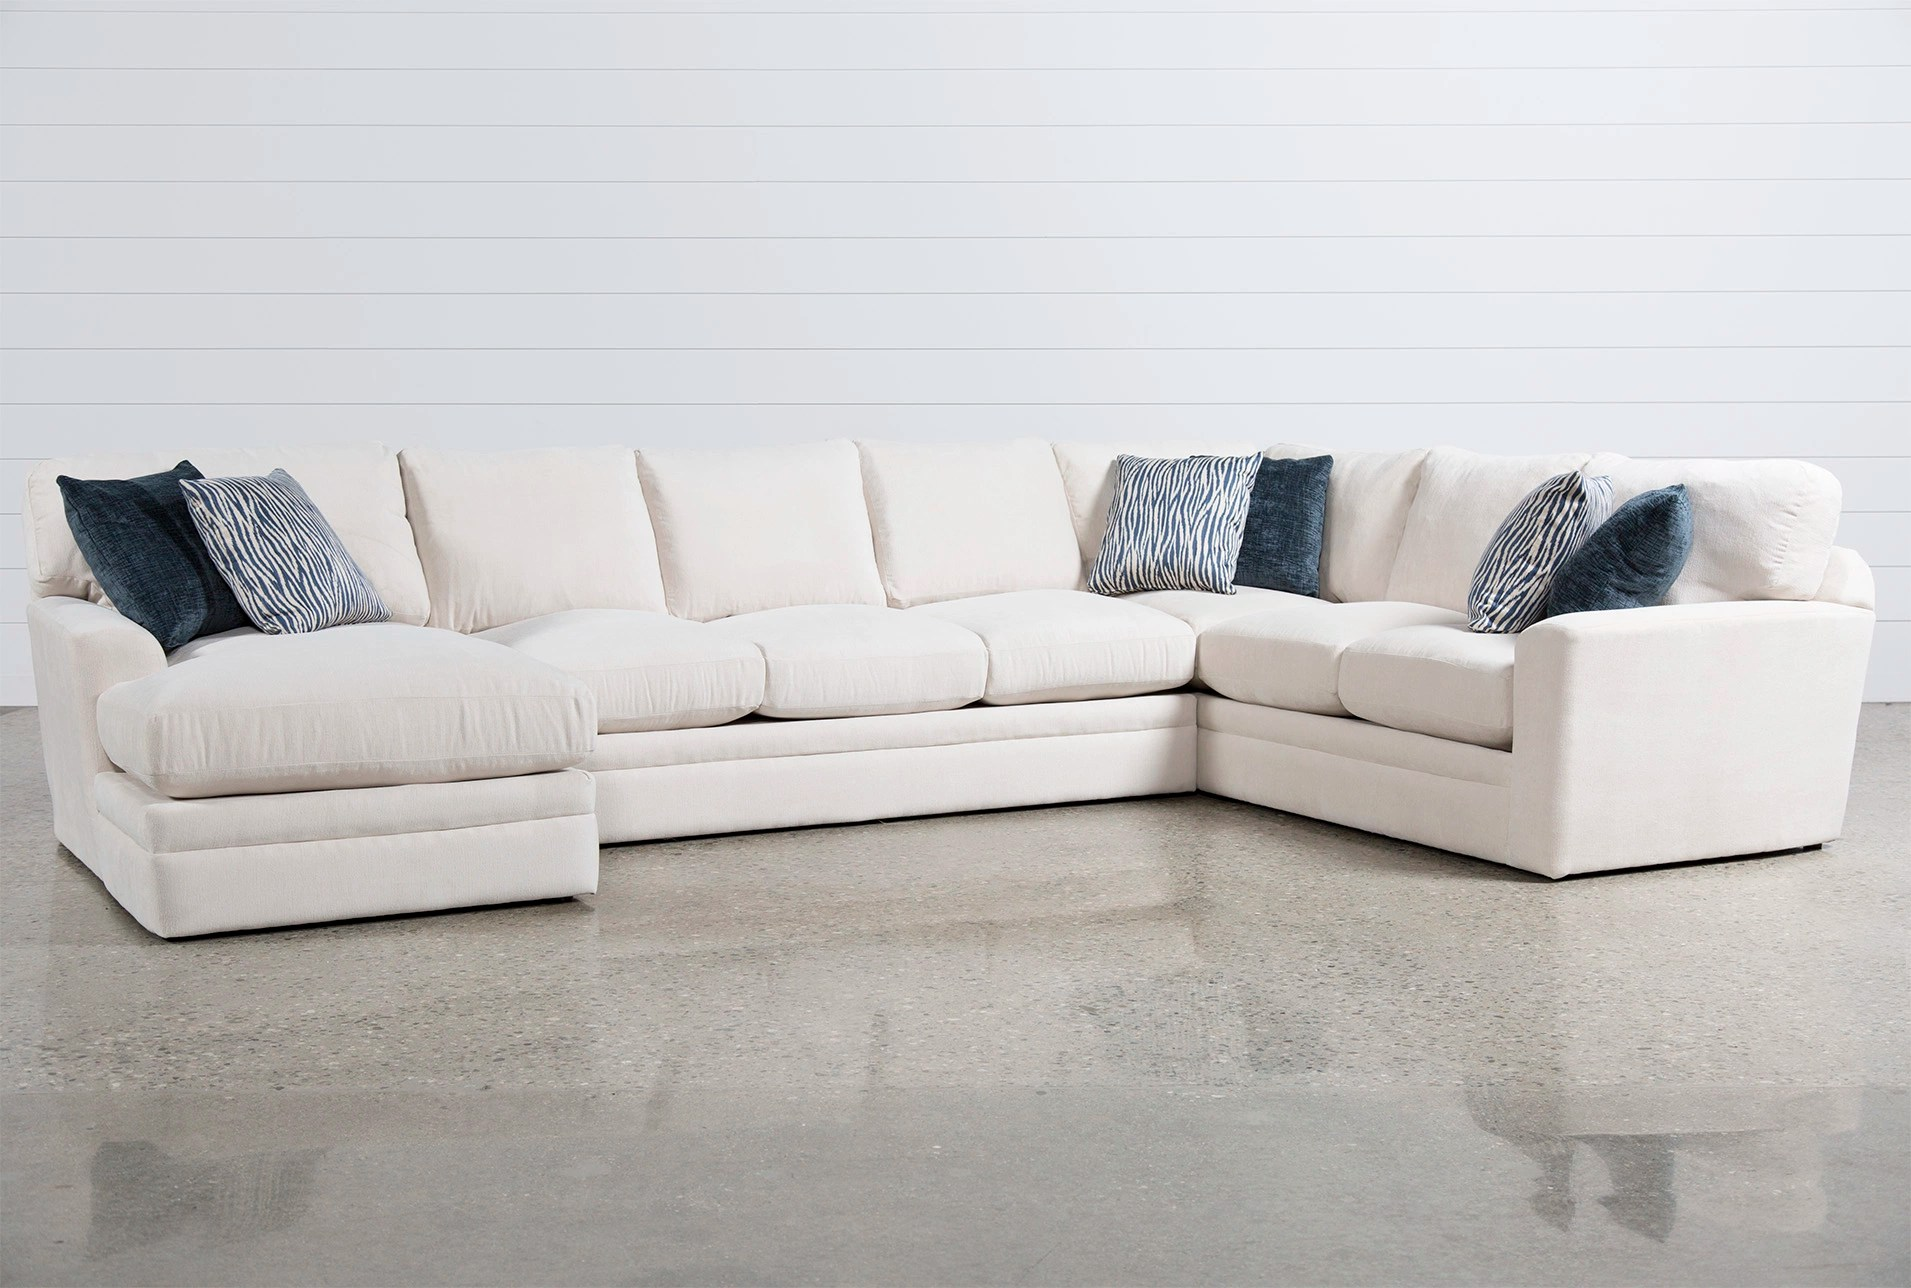 justin ii fabric reclining sectional sofa anese glamour roar rabbit velvet 60 west elm